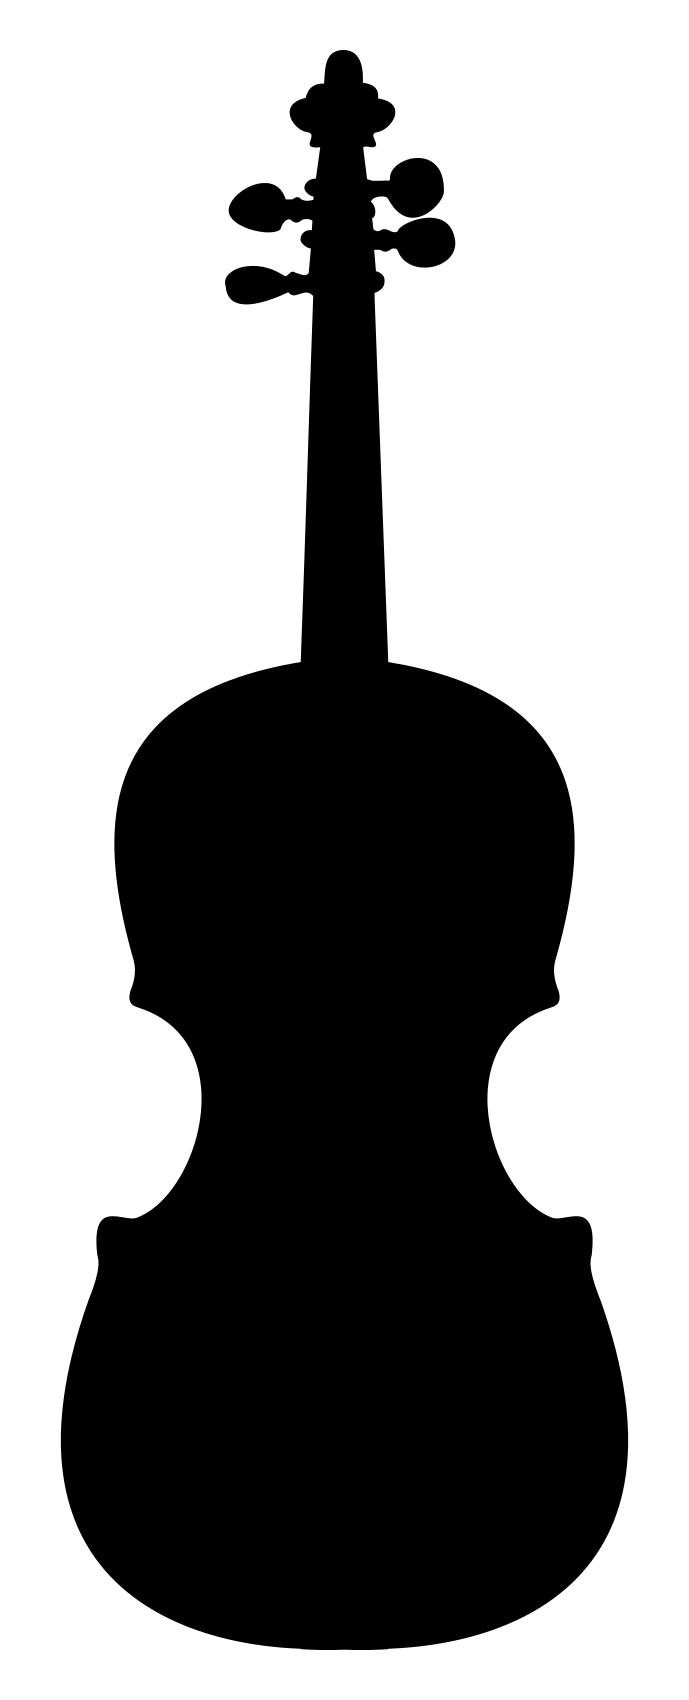 Cello clipart silhouette. Violin design droide